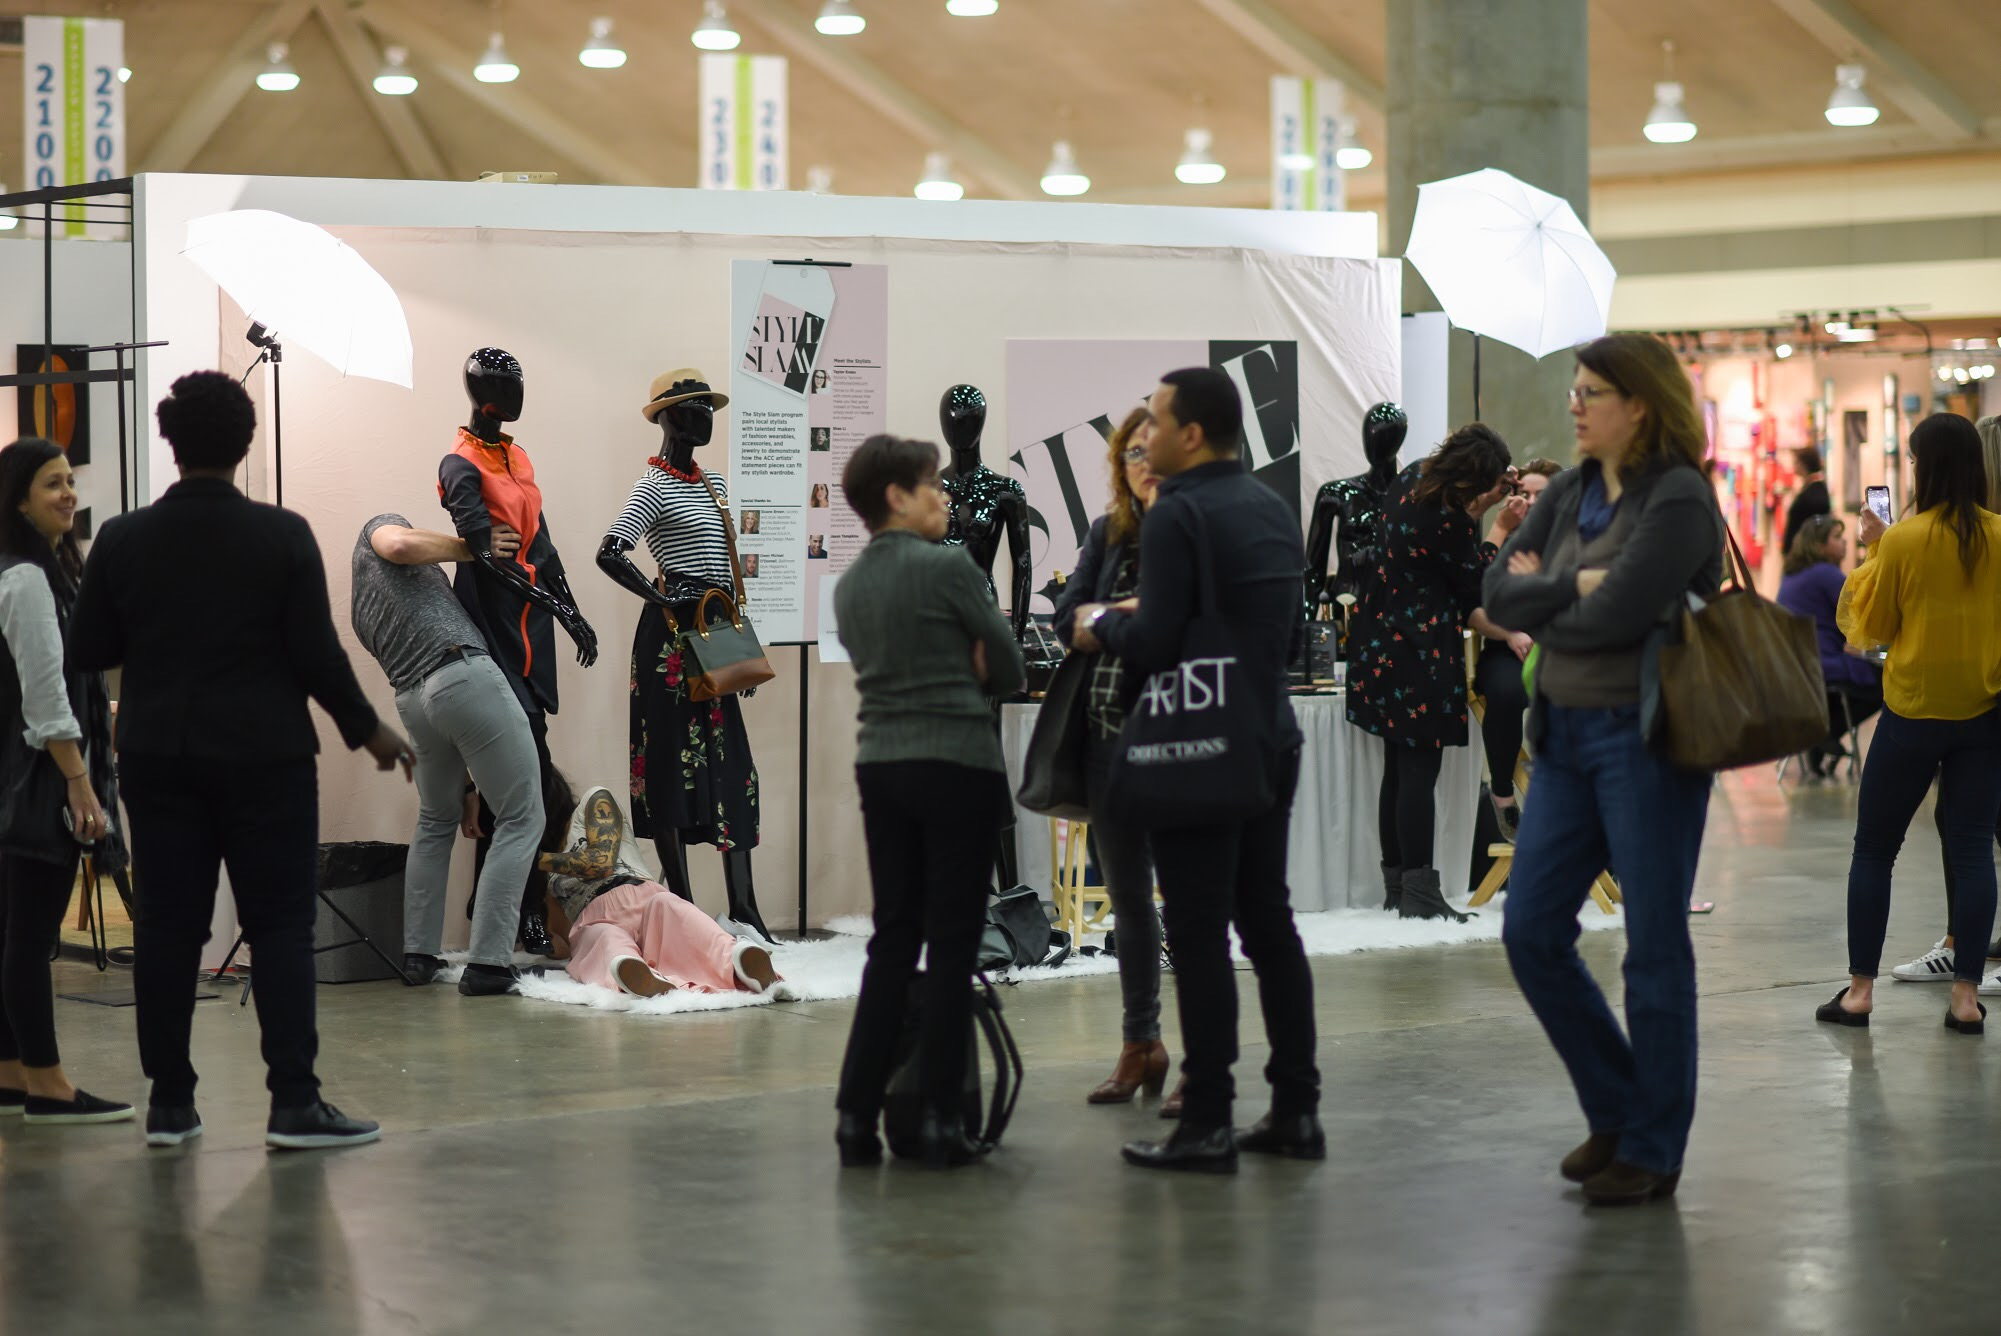 The Style Slam booth. Please note me lying on the ground attempting to put pants on my mannequin. I would later change the outfit because it didn't translate as well as it did on an actual model.